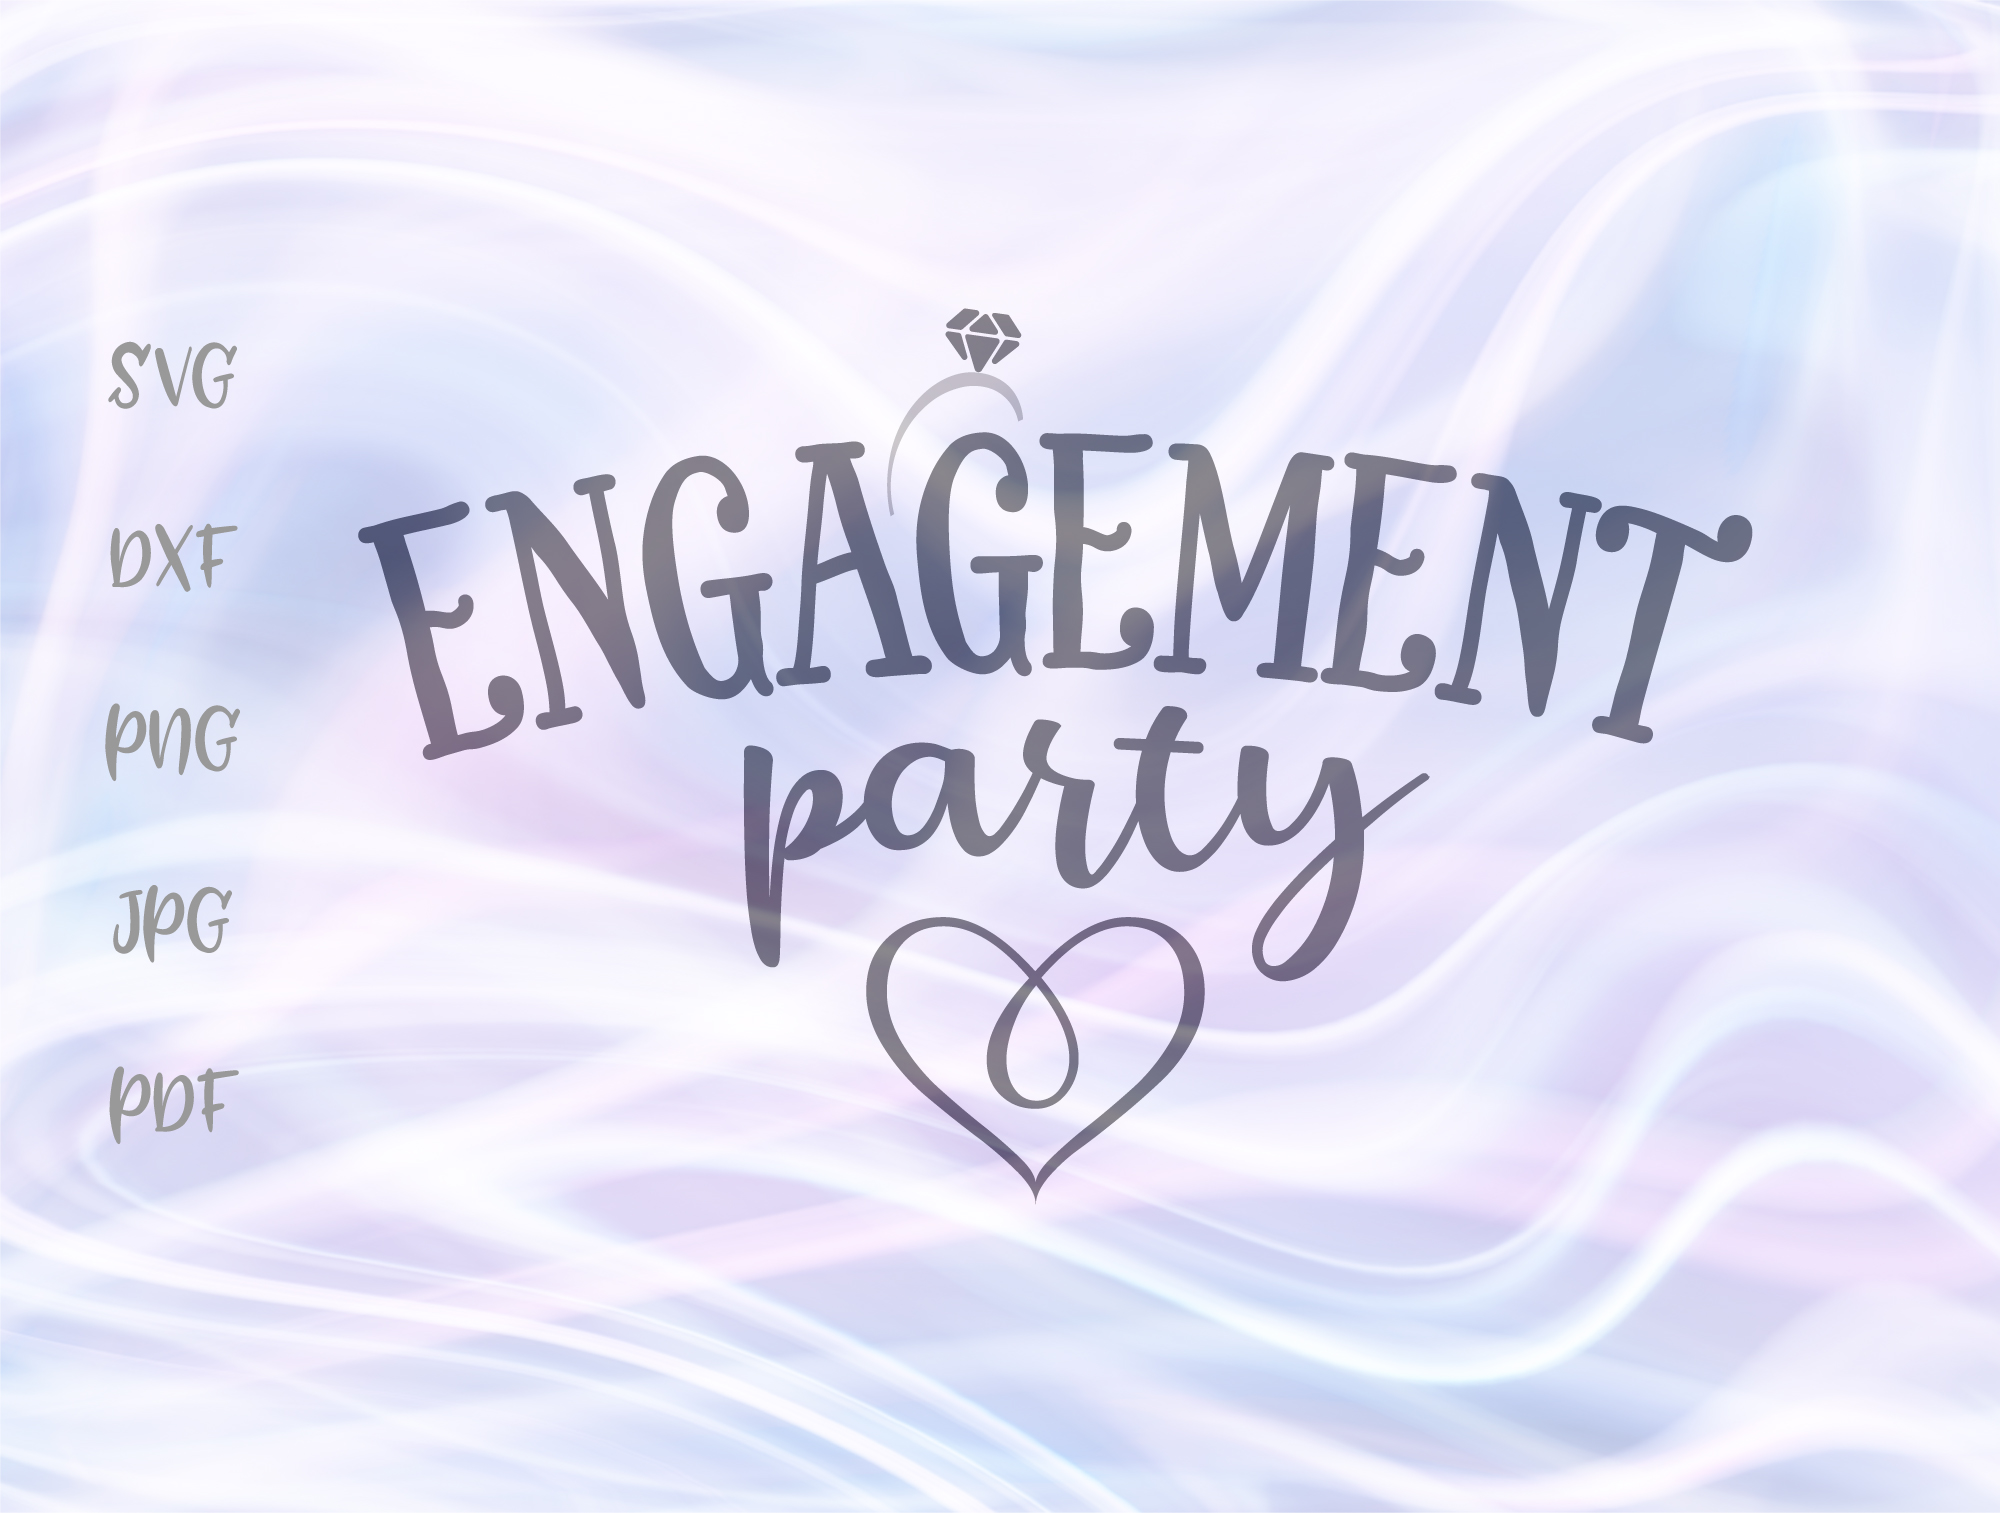 Free Clipart Engagement Party | Free Images at Clker.com - vector clip art  online, royalty free & public domain